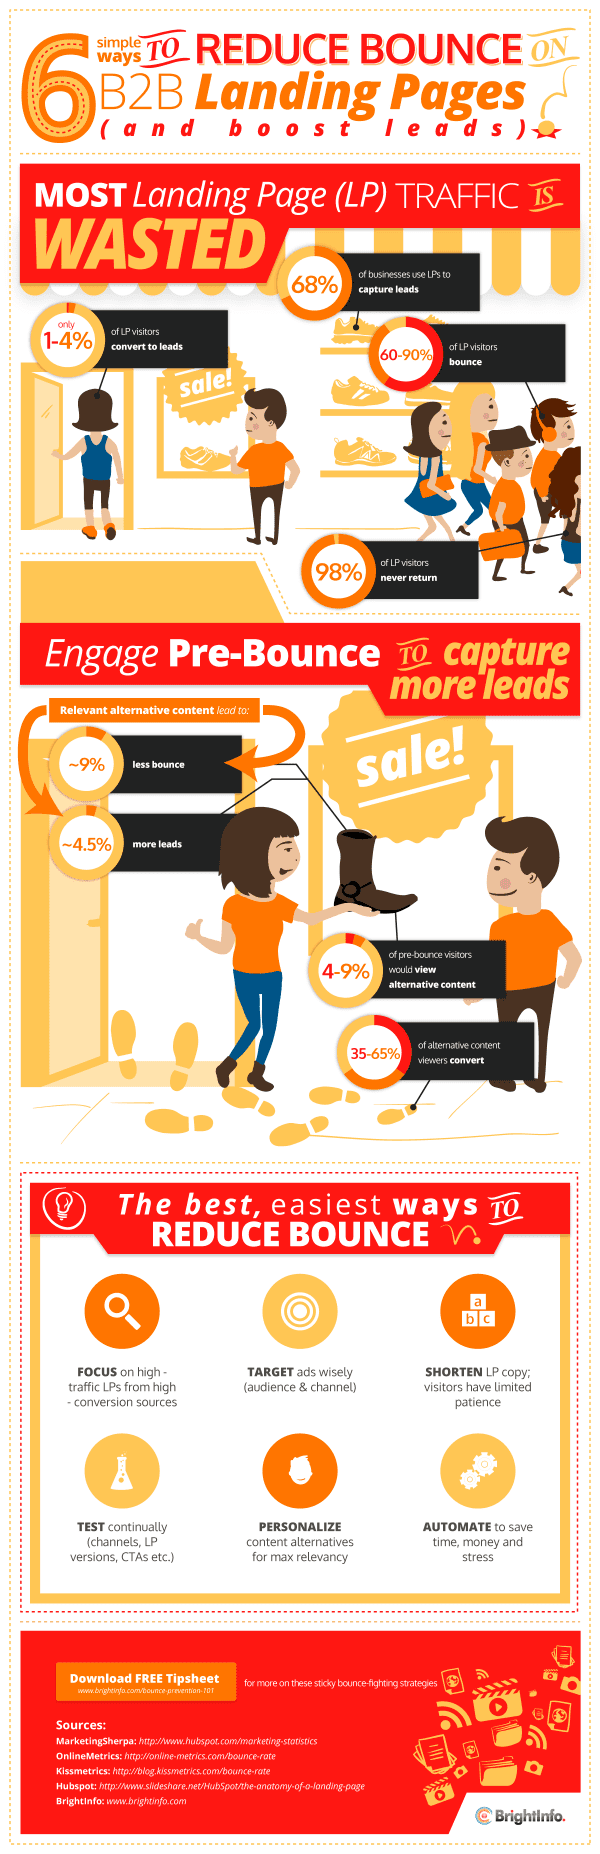 Six-Ways-To-Reduce-Bounce_infographic